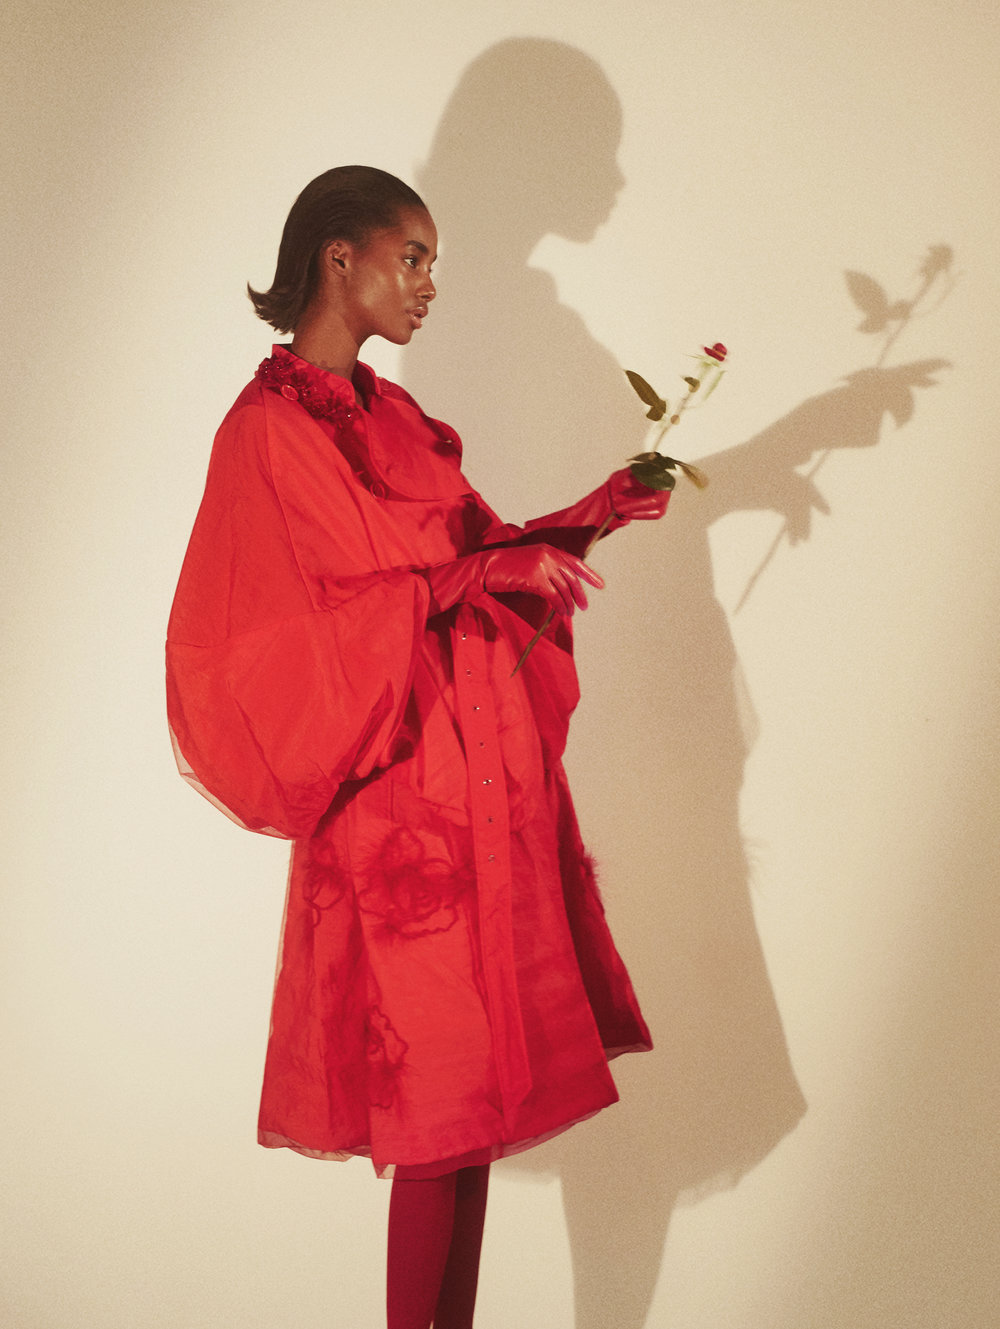 Tami Williams at The Society by Mikey Asanin